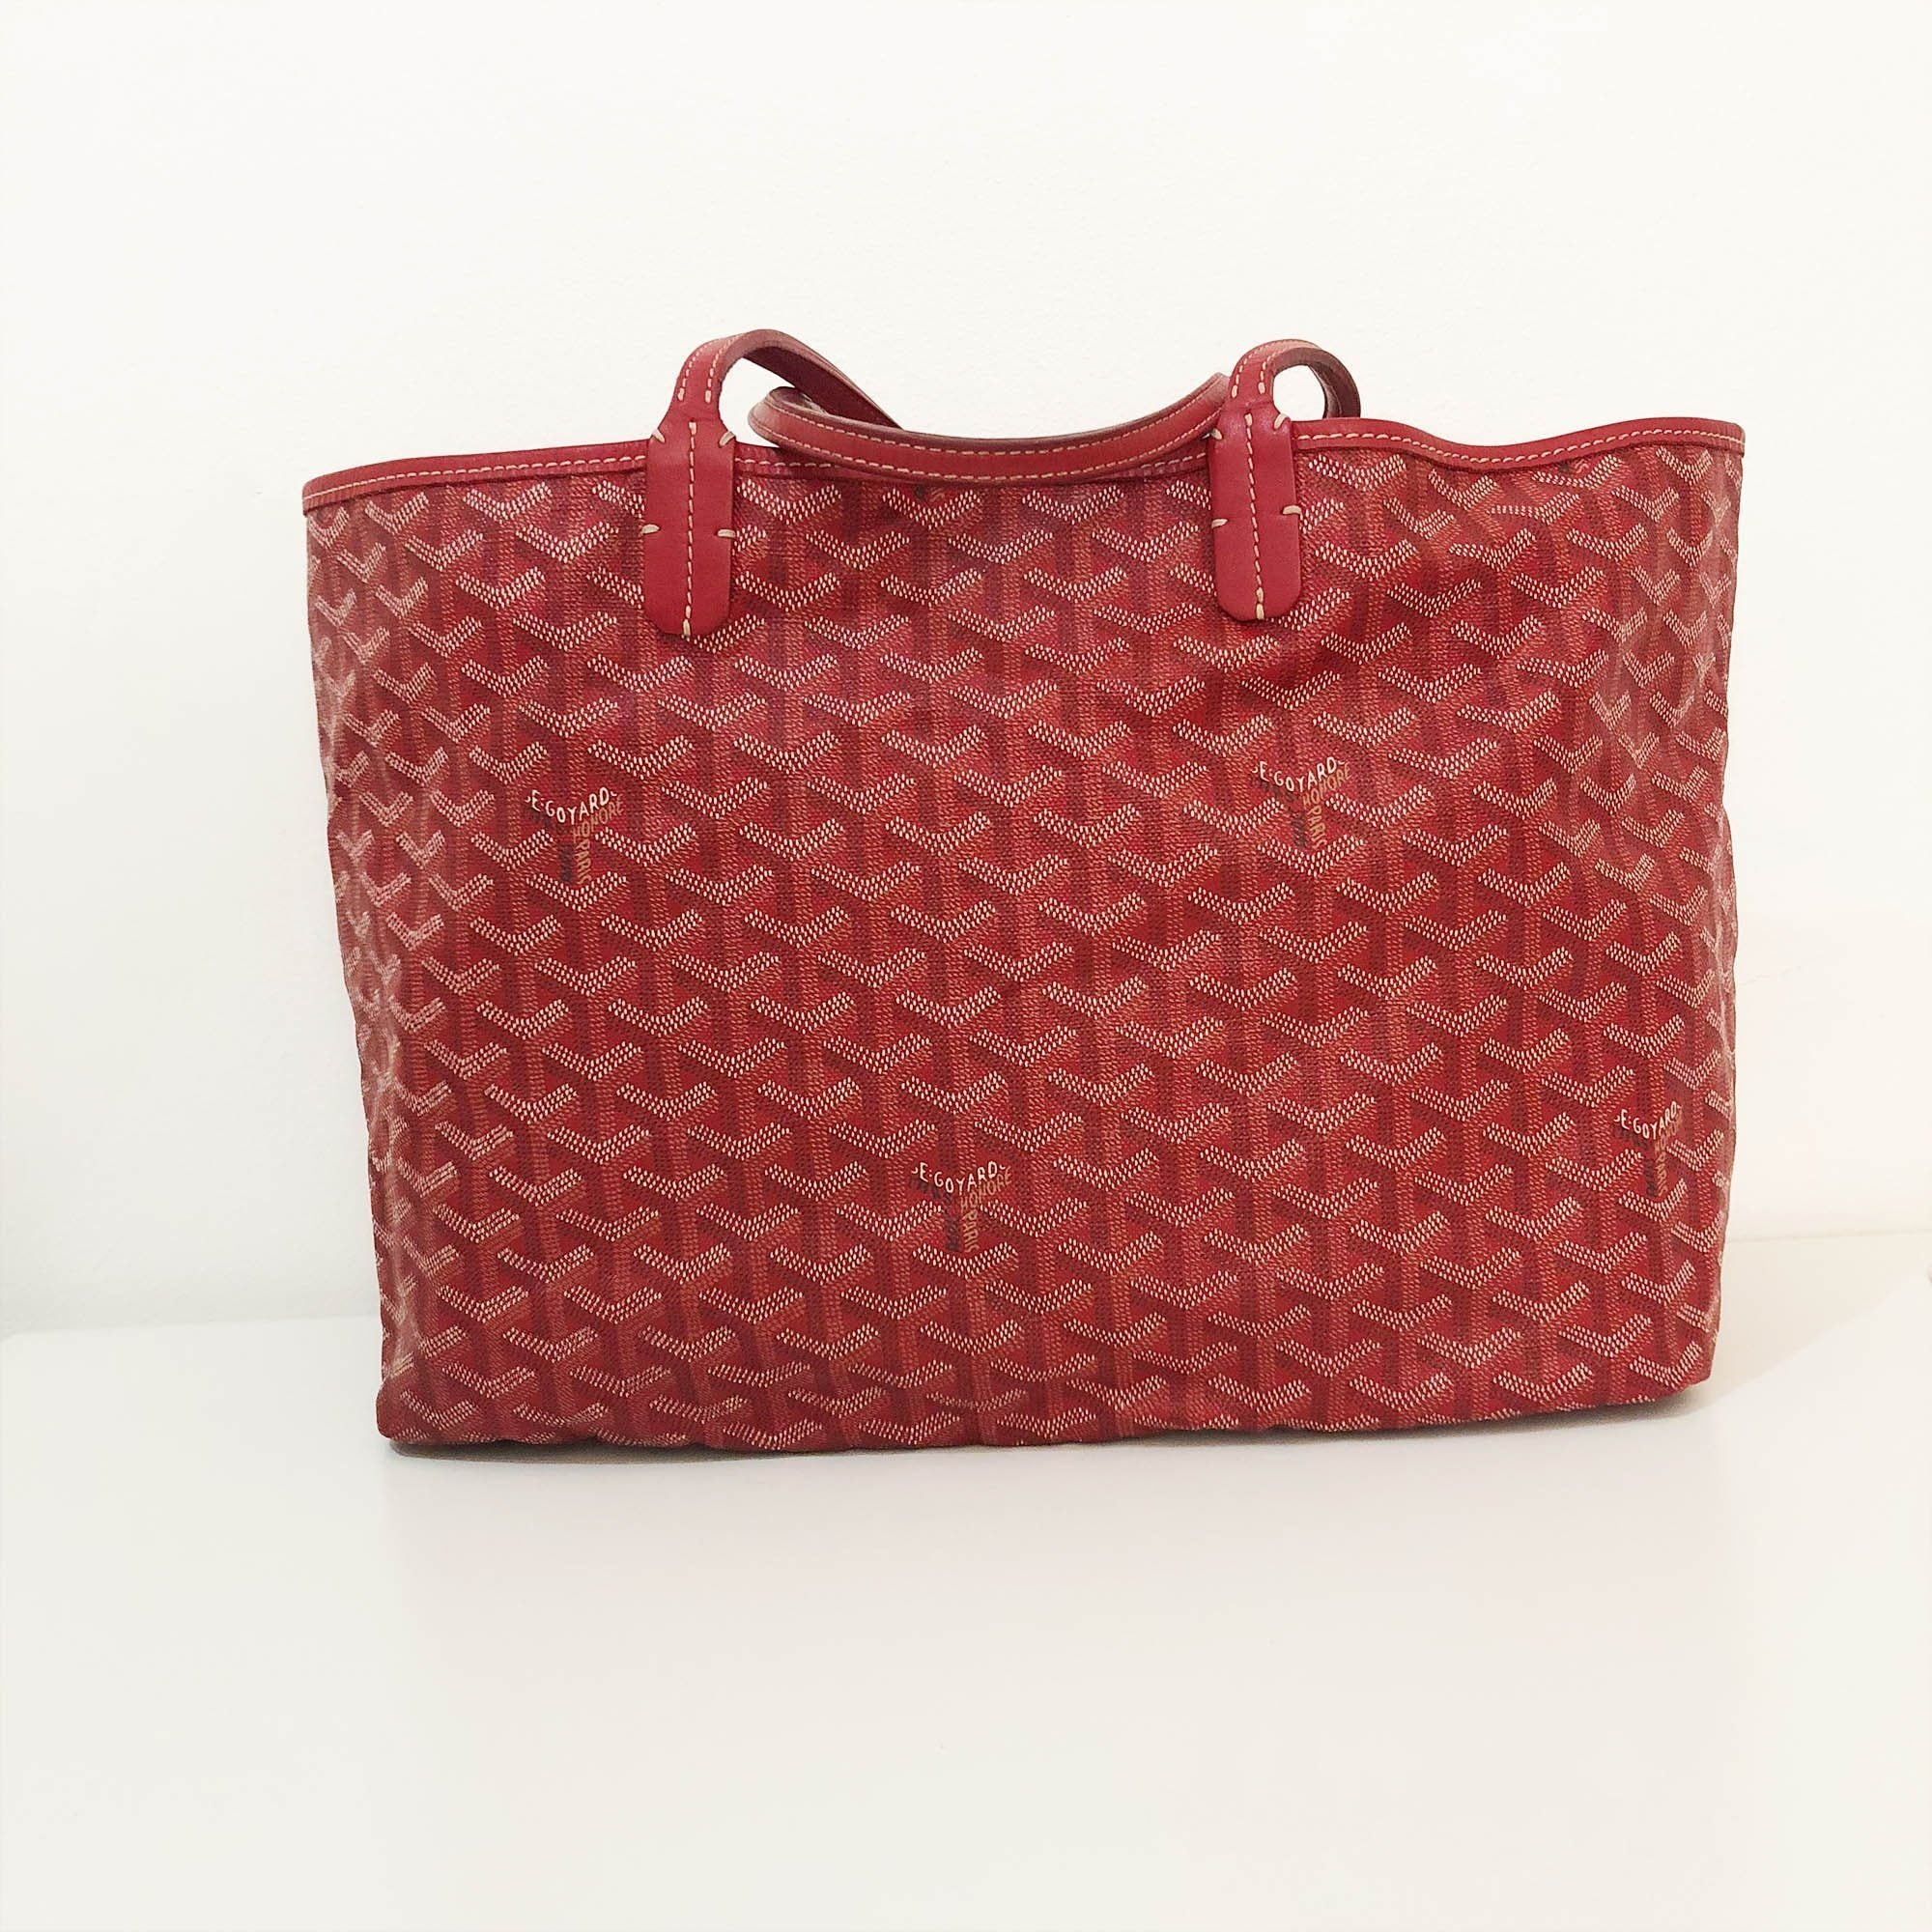 Goyard Red St Louis PM Chevron Leather Canvas Tote Bag